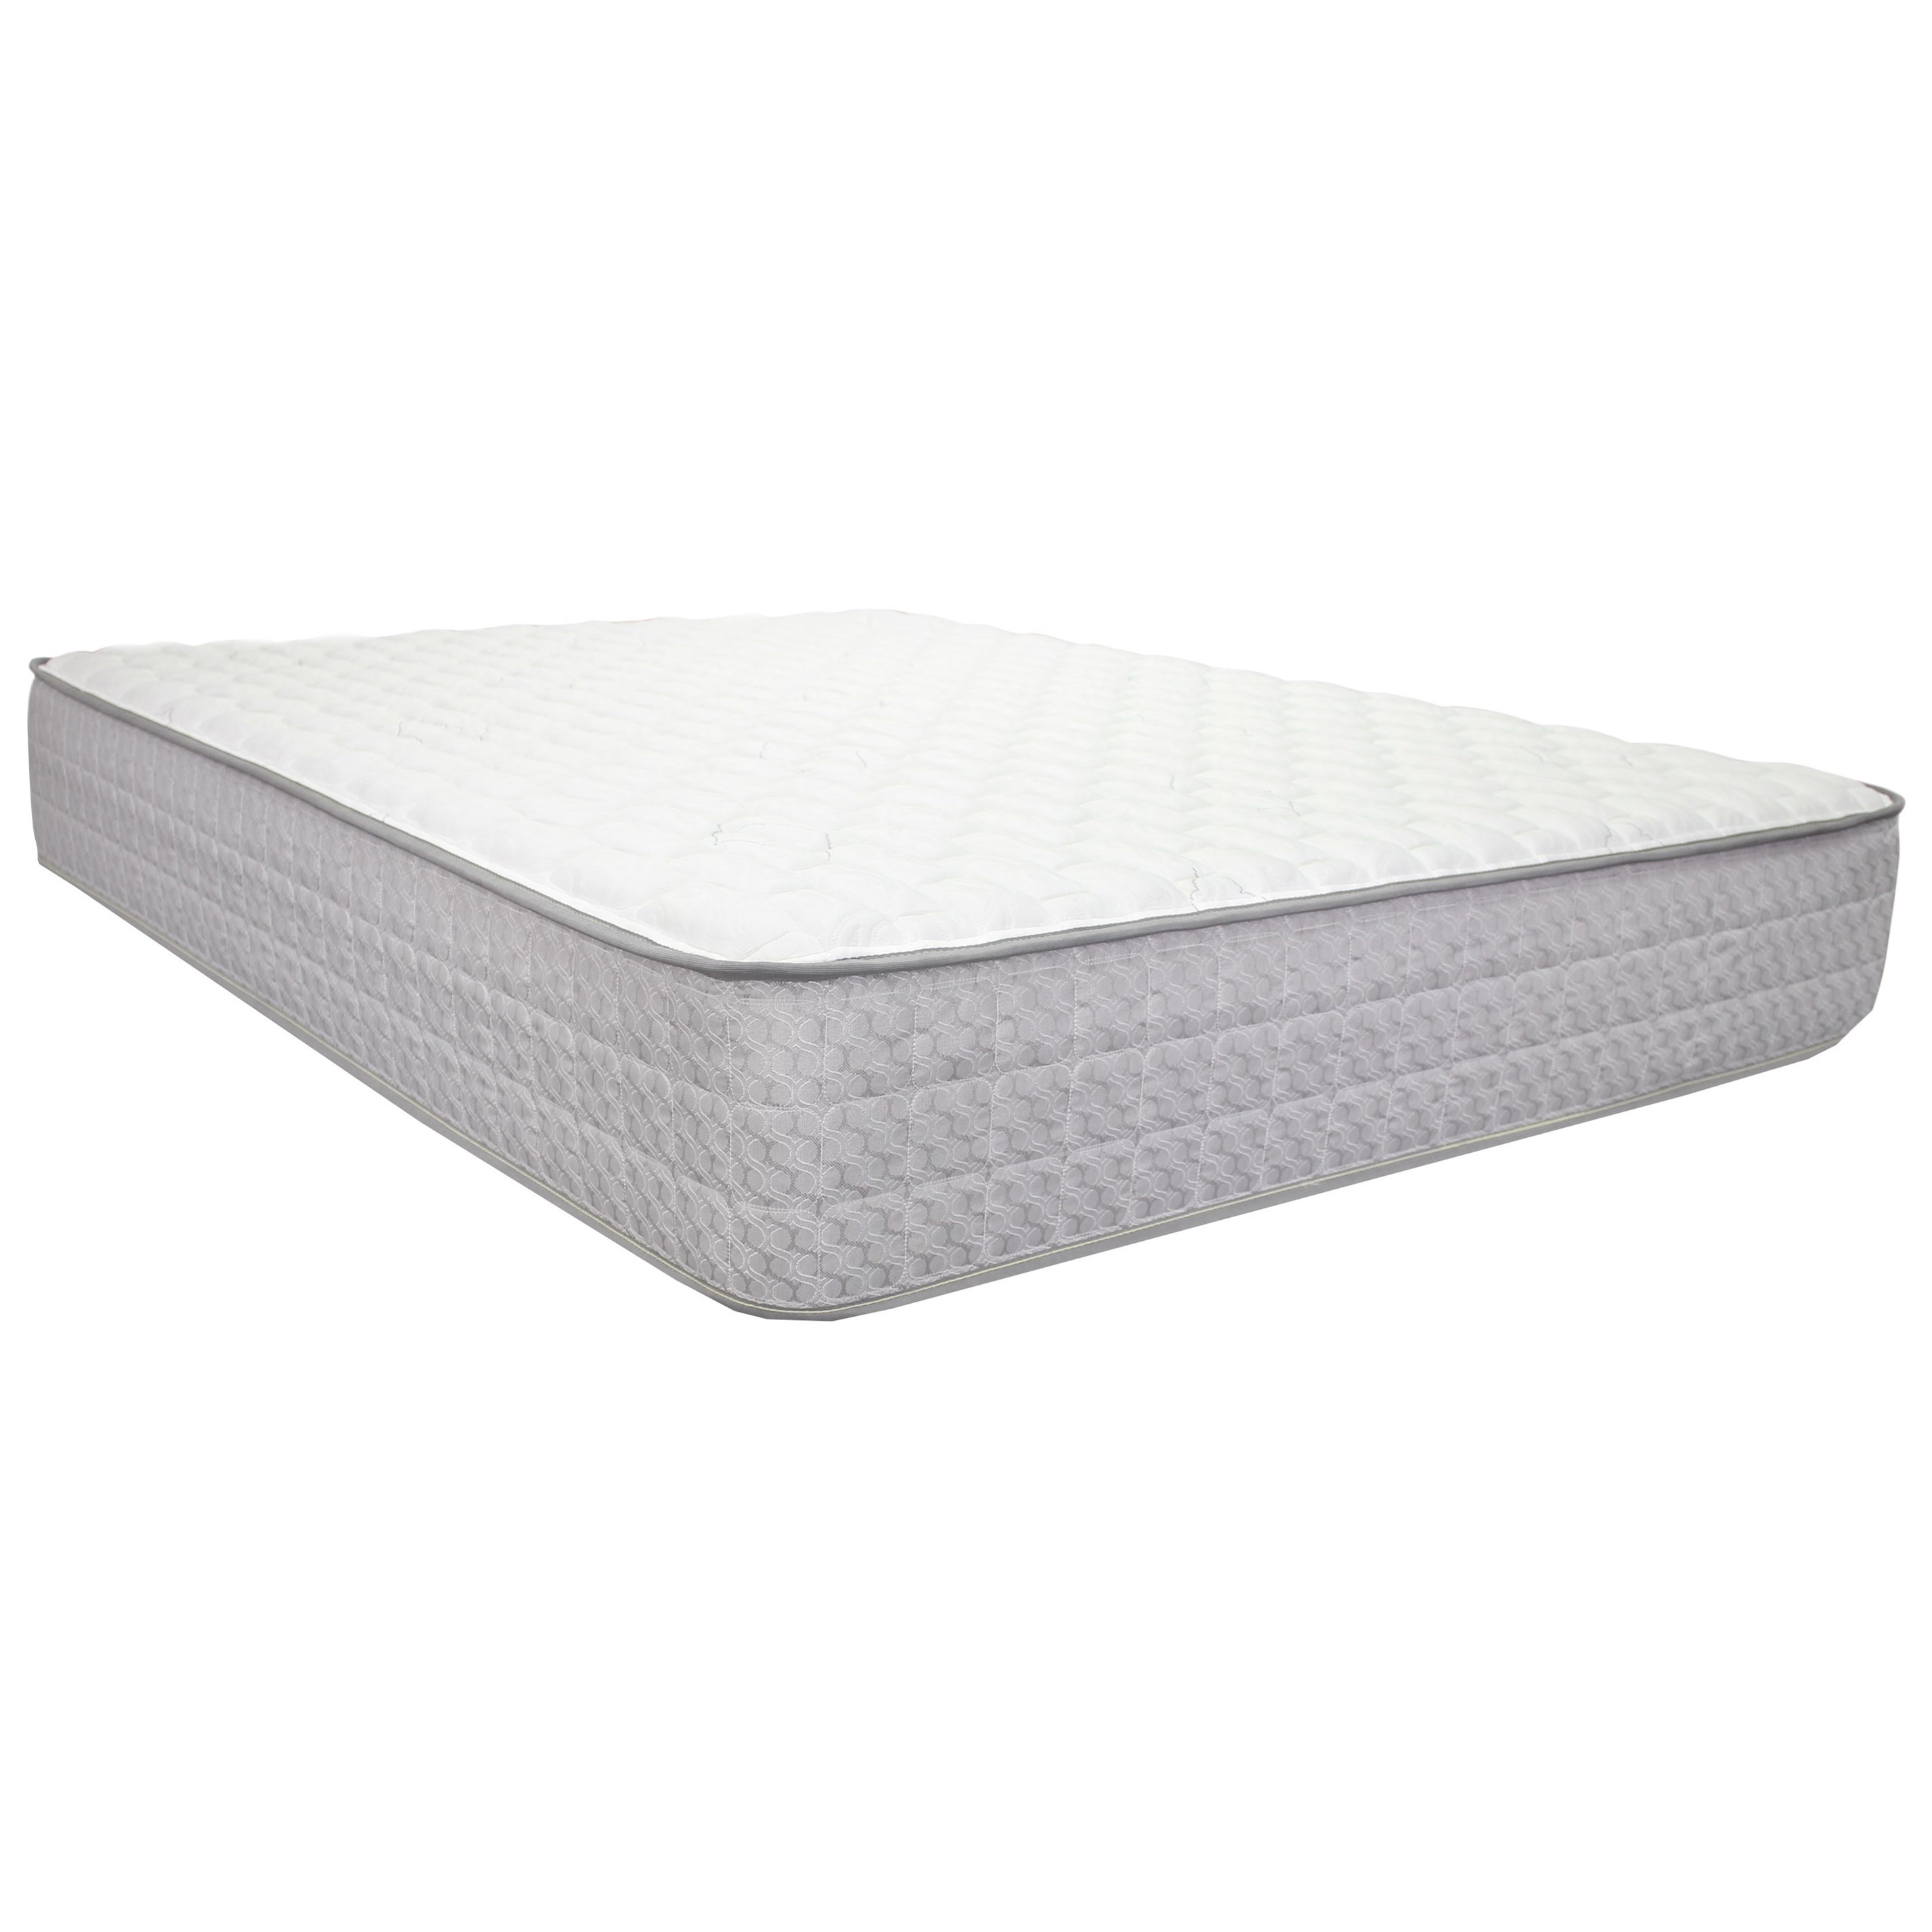 "Queen 11 1/2"" Firm Mattress"